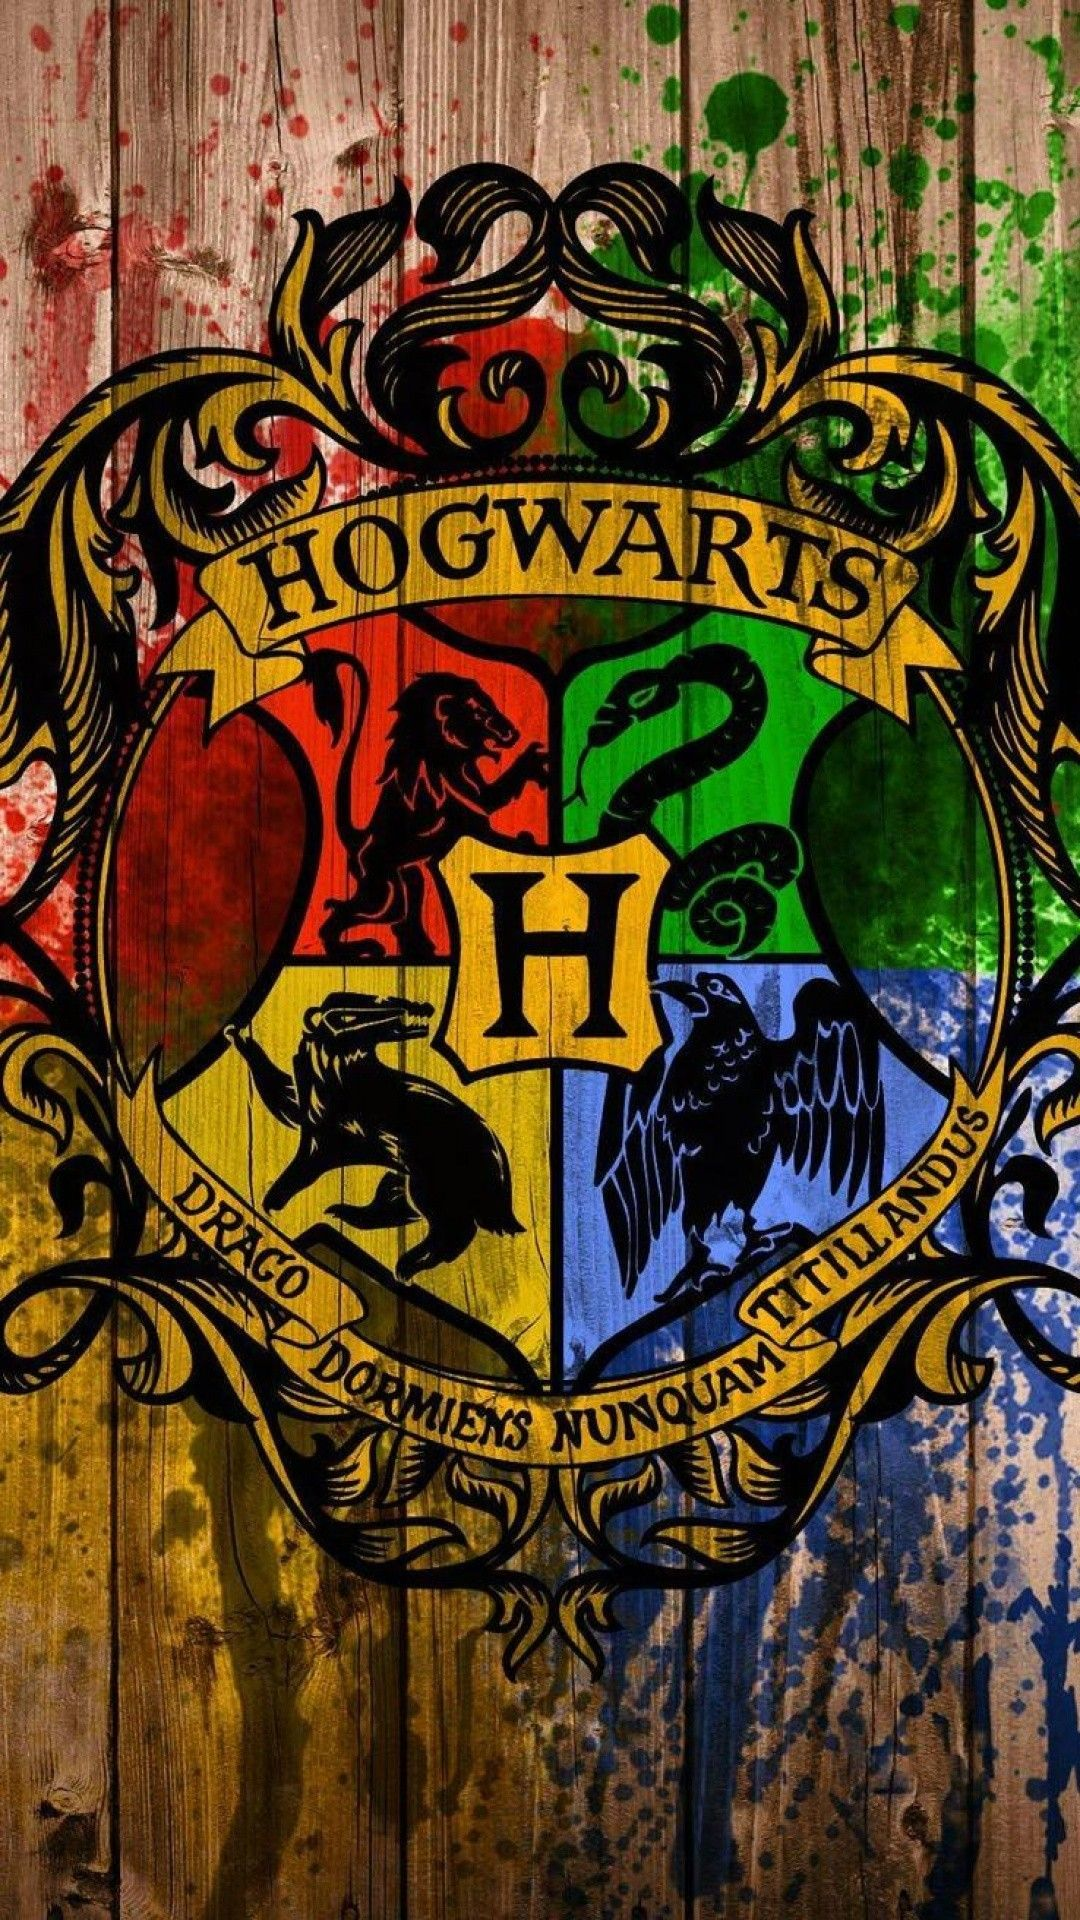 1080x1920 Harry Potter Iphone Backgrounds Wallpaper Wiki Harry Potter Wallpaper Harry Potter Background Harry Potter Iphone Wallpaper